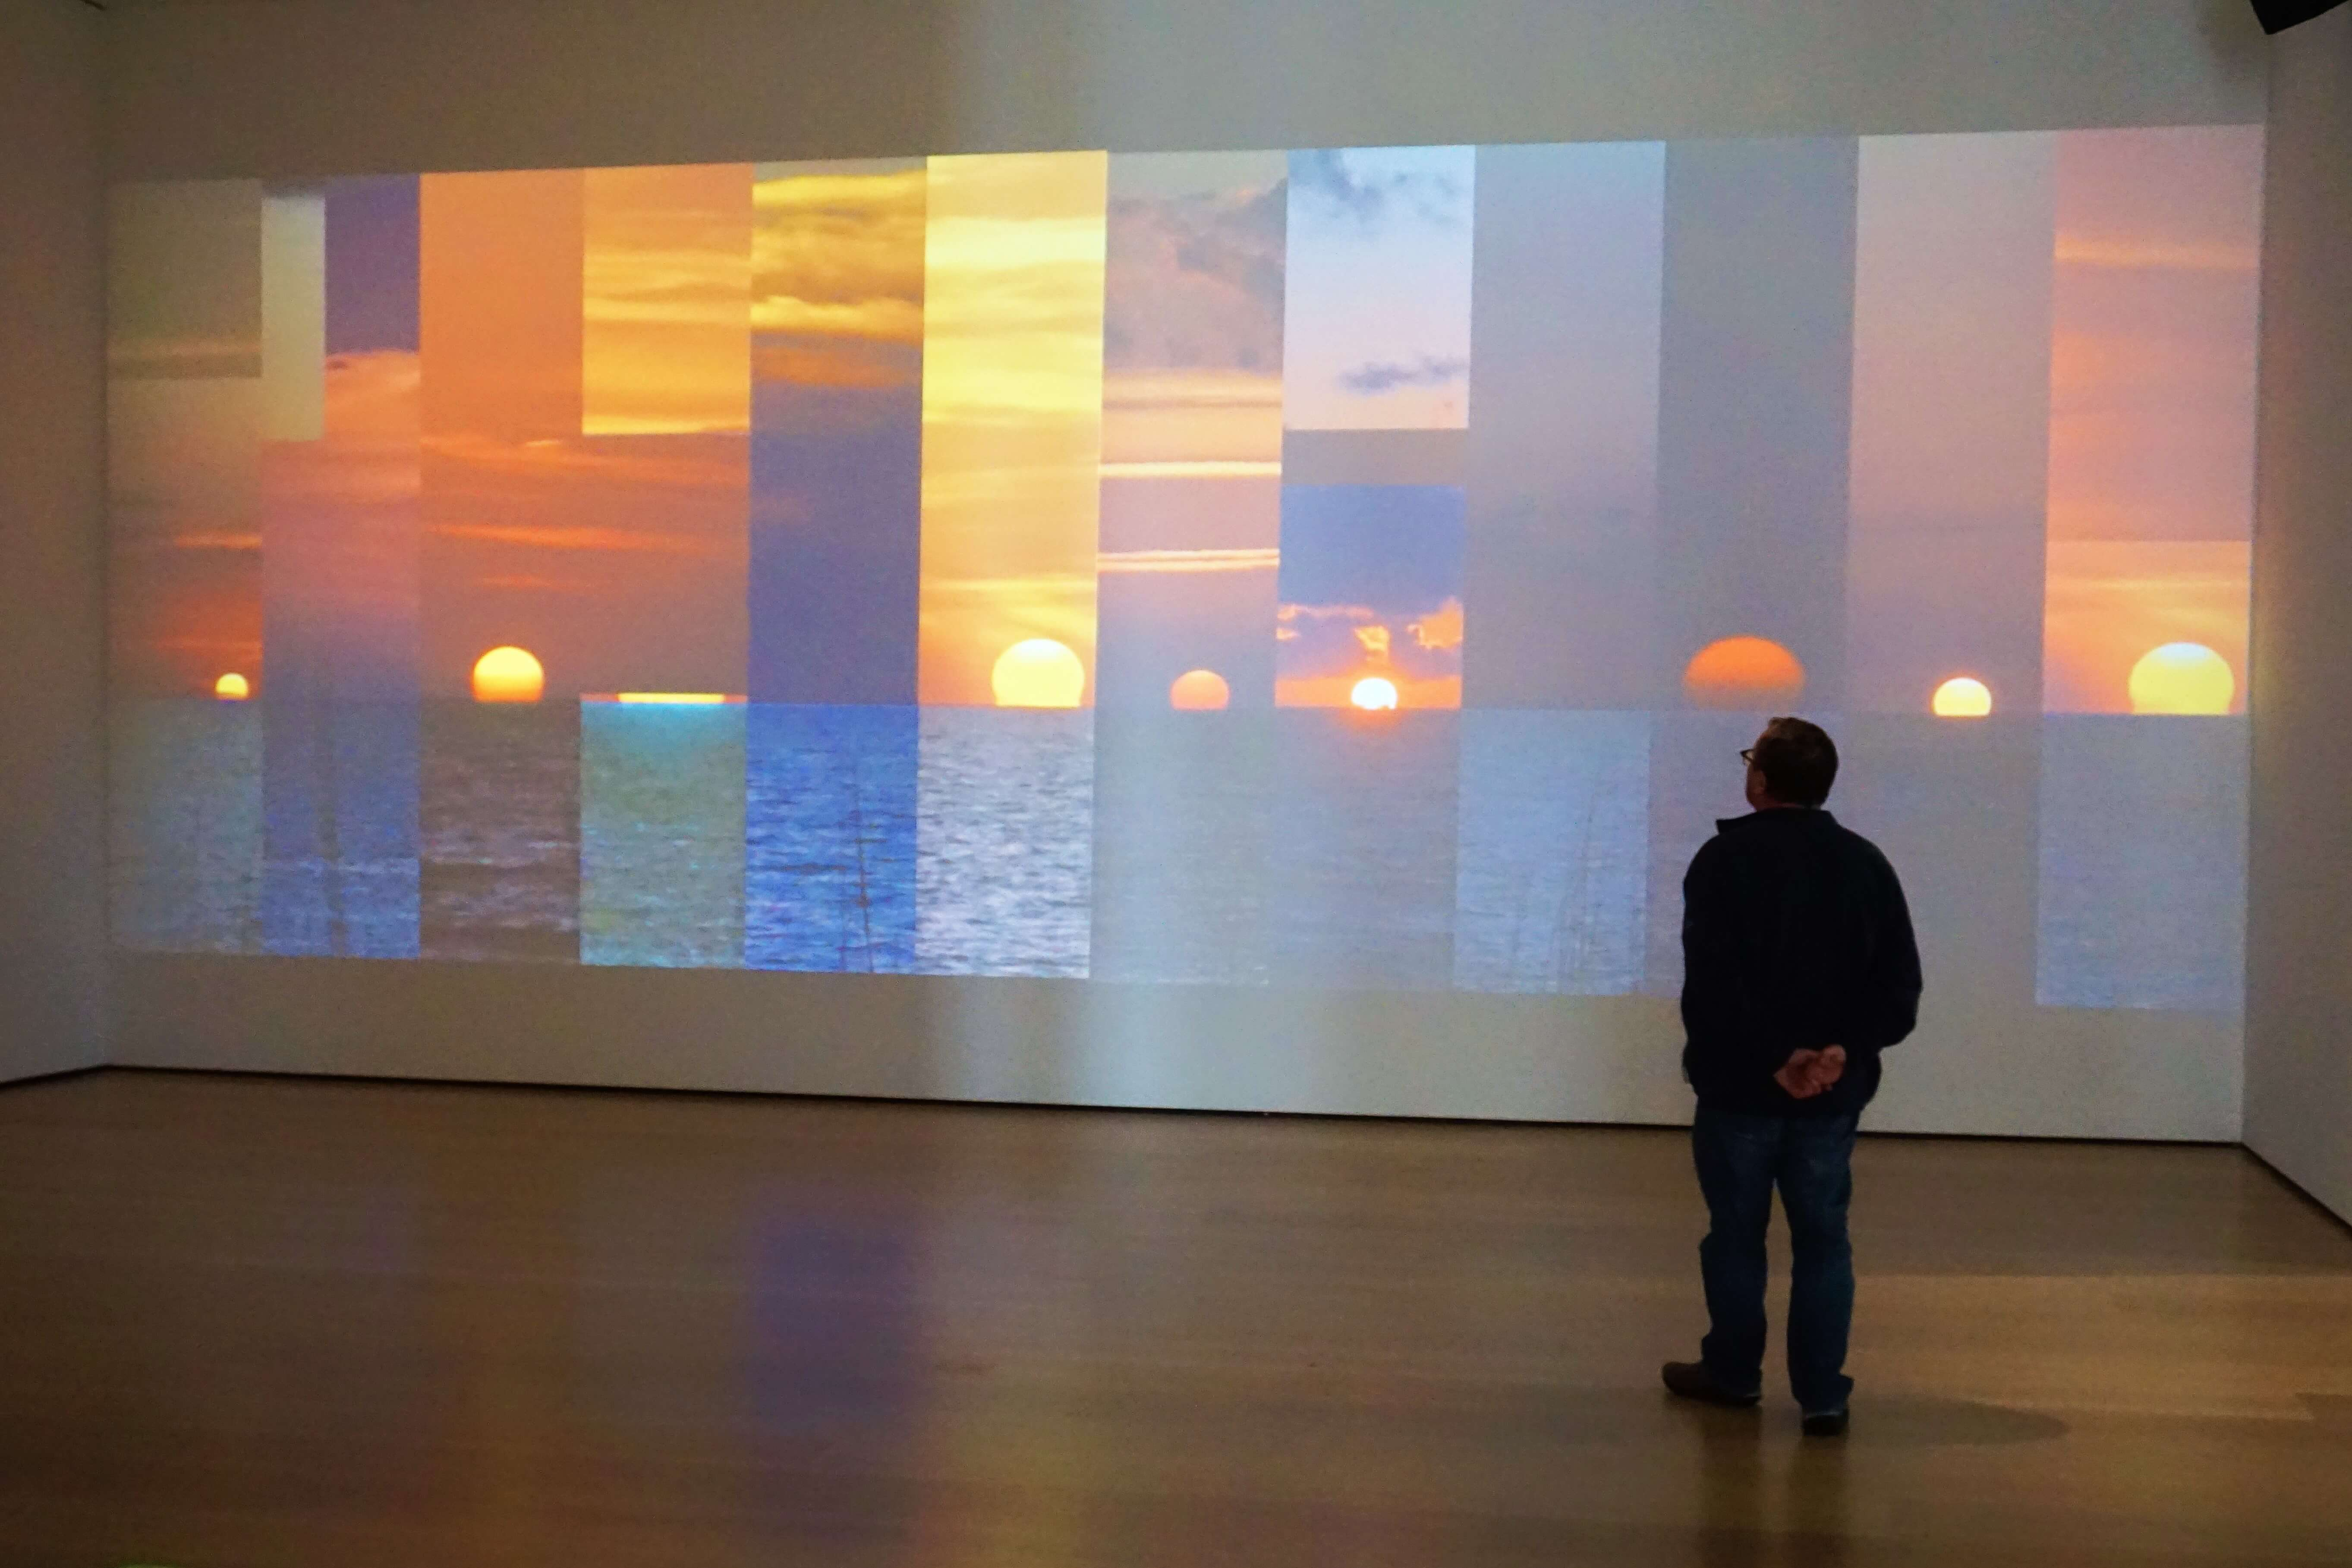 From the Hammer Museum exhibit, Unspeakable; Atlas, Kruger, Walker. A series of sunset photos is projected on the wall